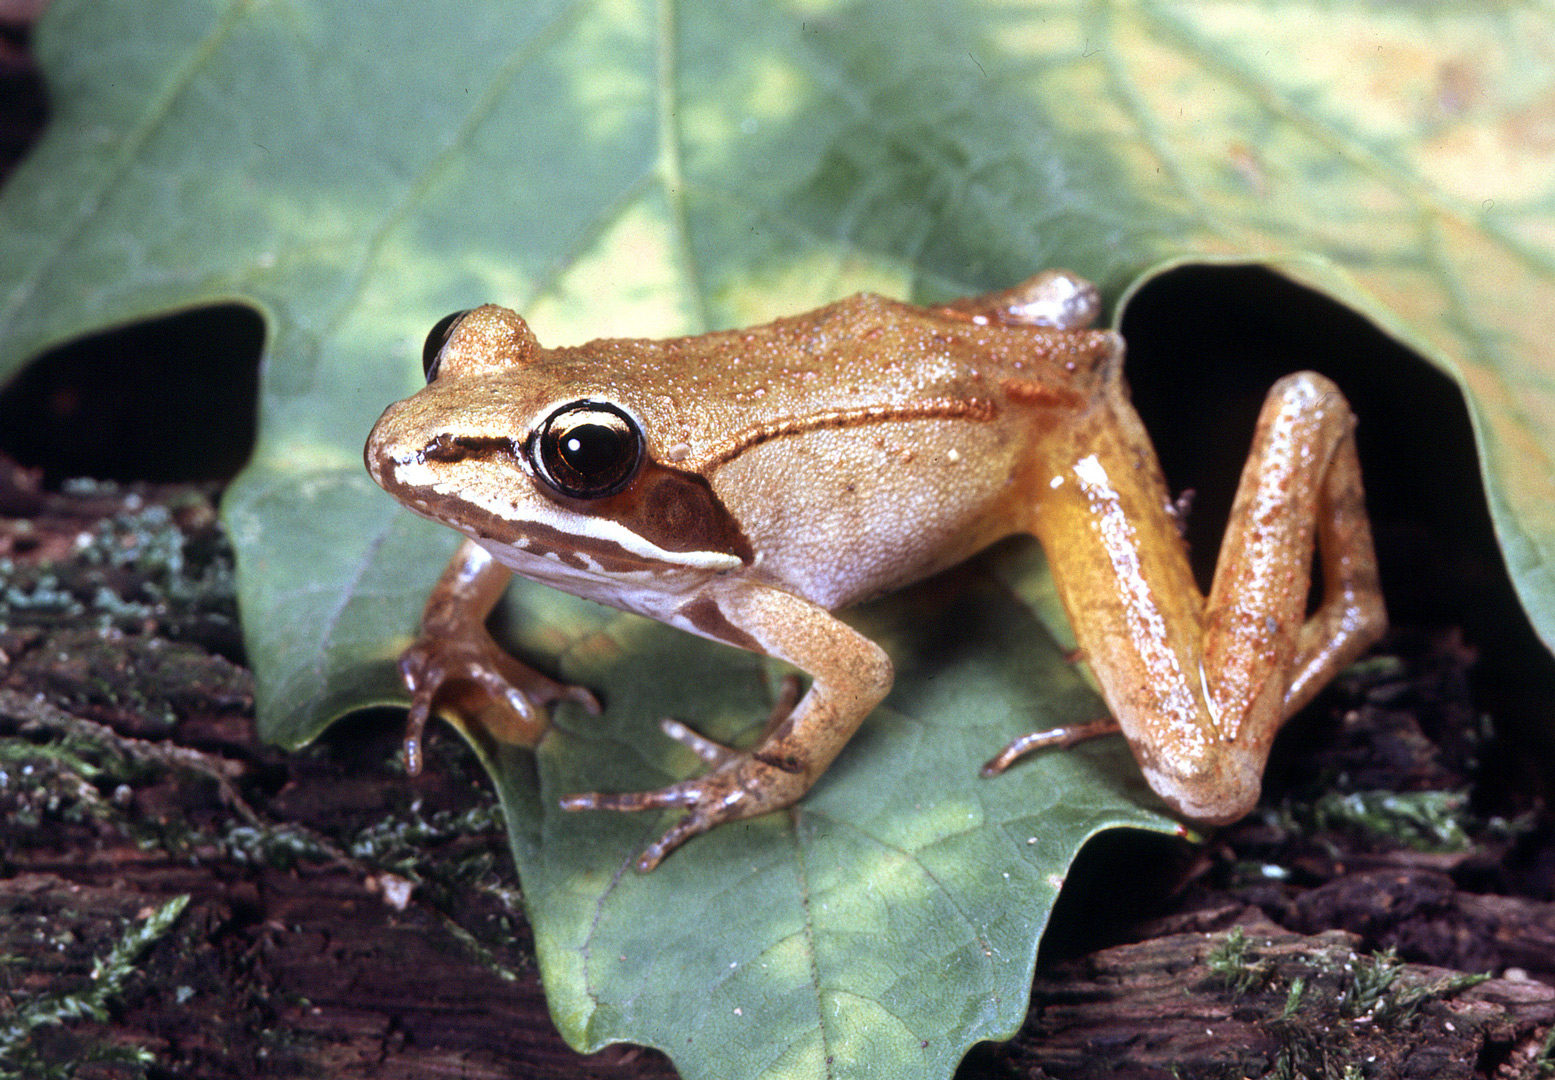 Wood frog on a leaf is a harbinger of spring.